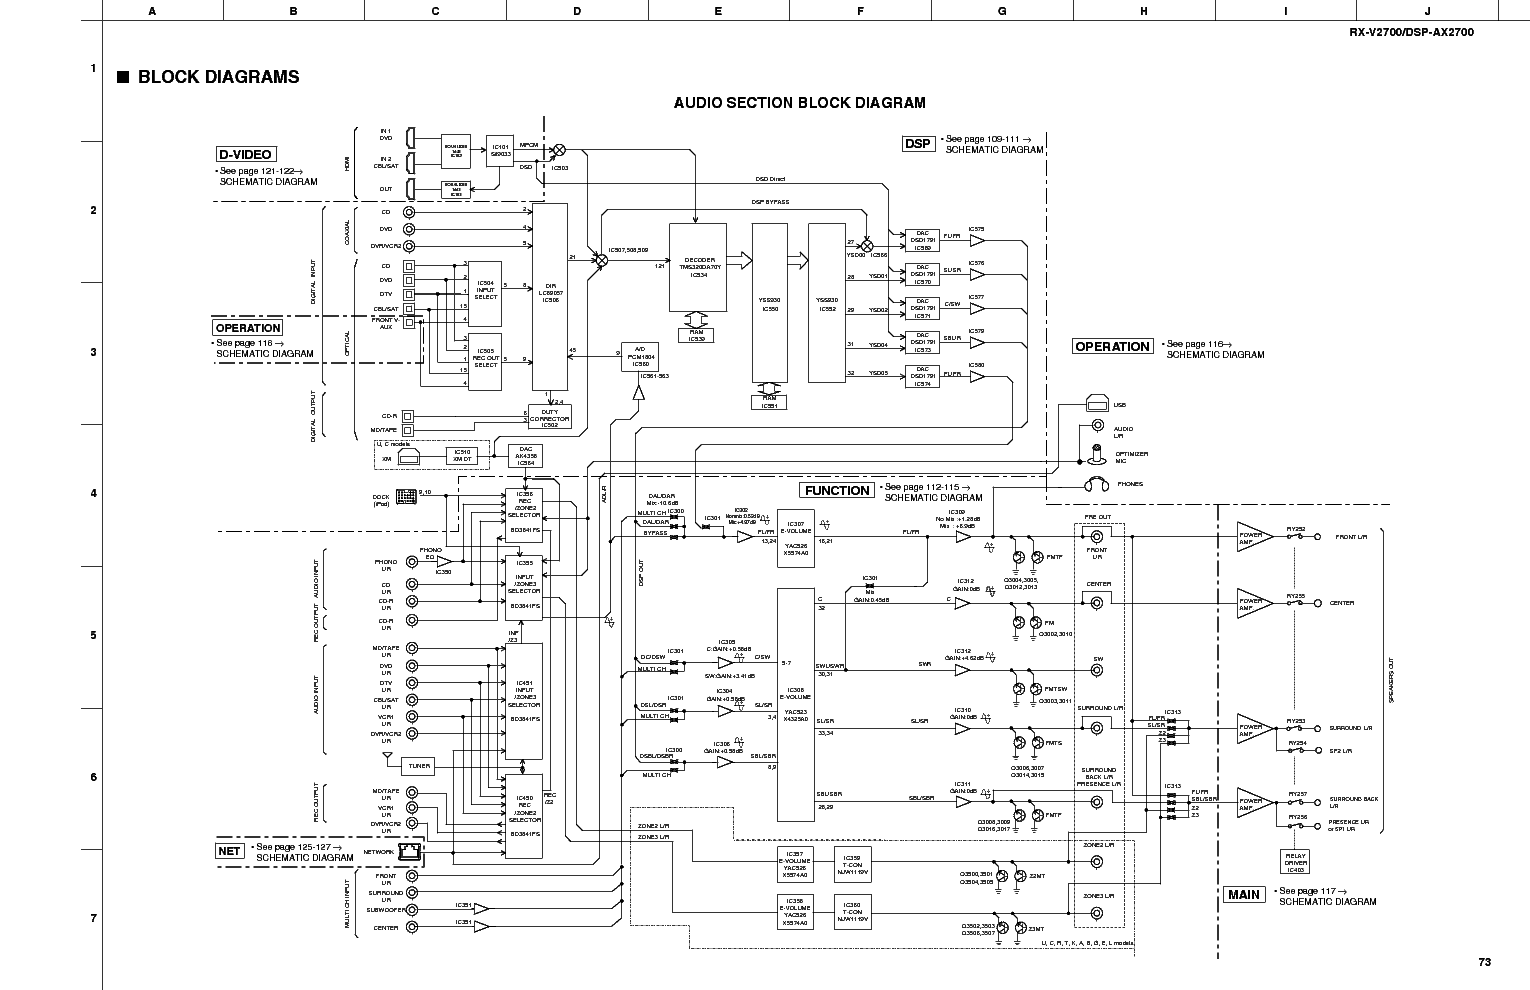 yamaha_rx v2700_dsp ax2700_sch.pdf_1 yamaha rx v2700 dsp ax2700 sch service manual download, schematics yamaha schematic diagram at n-0.co